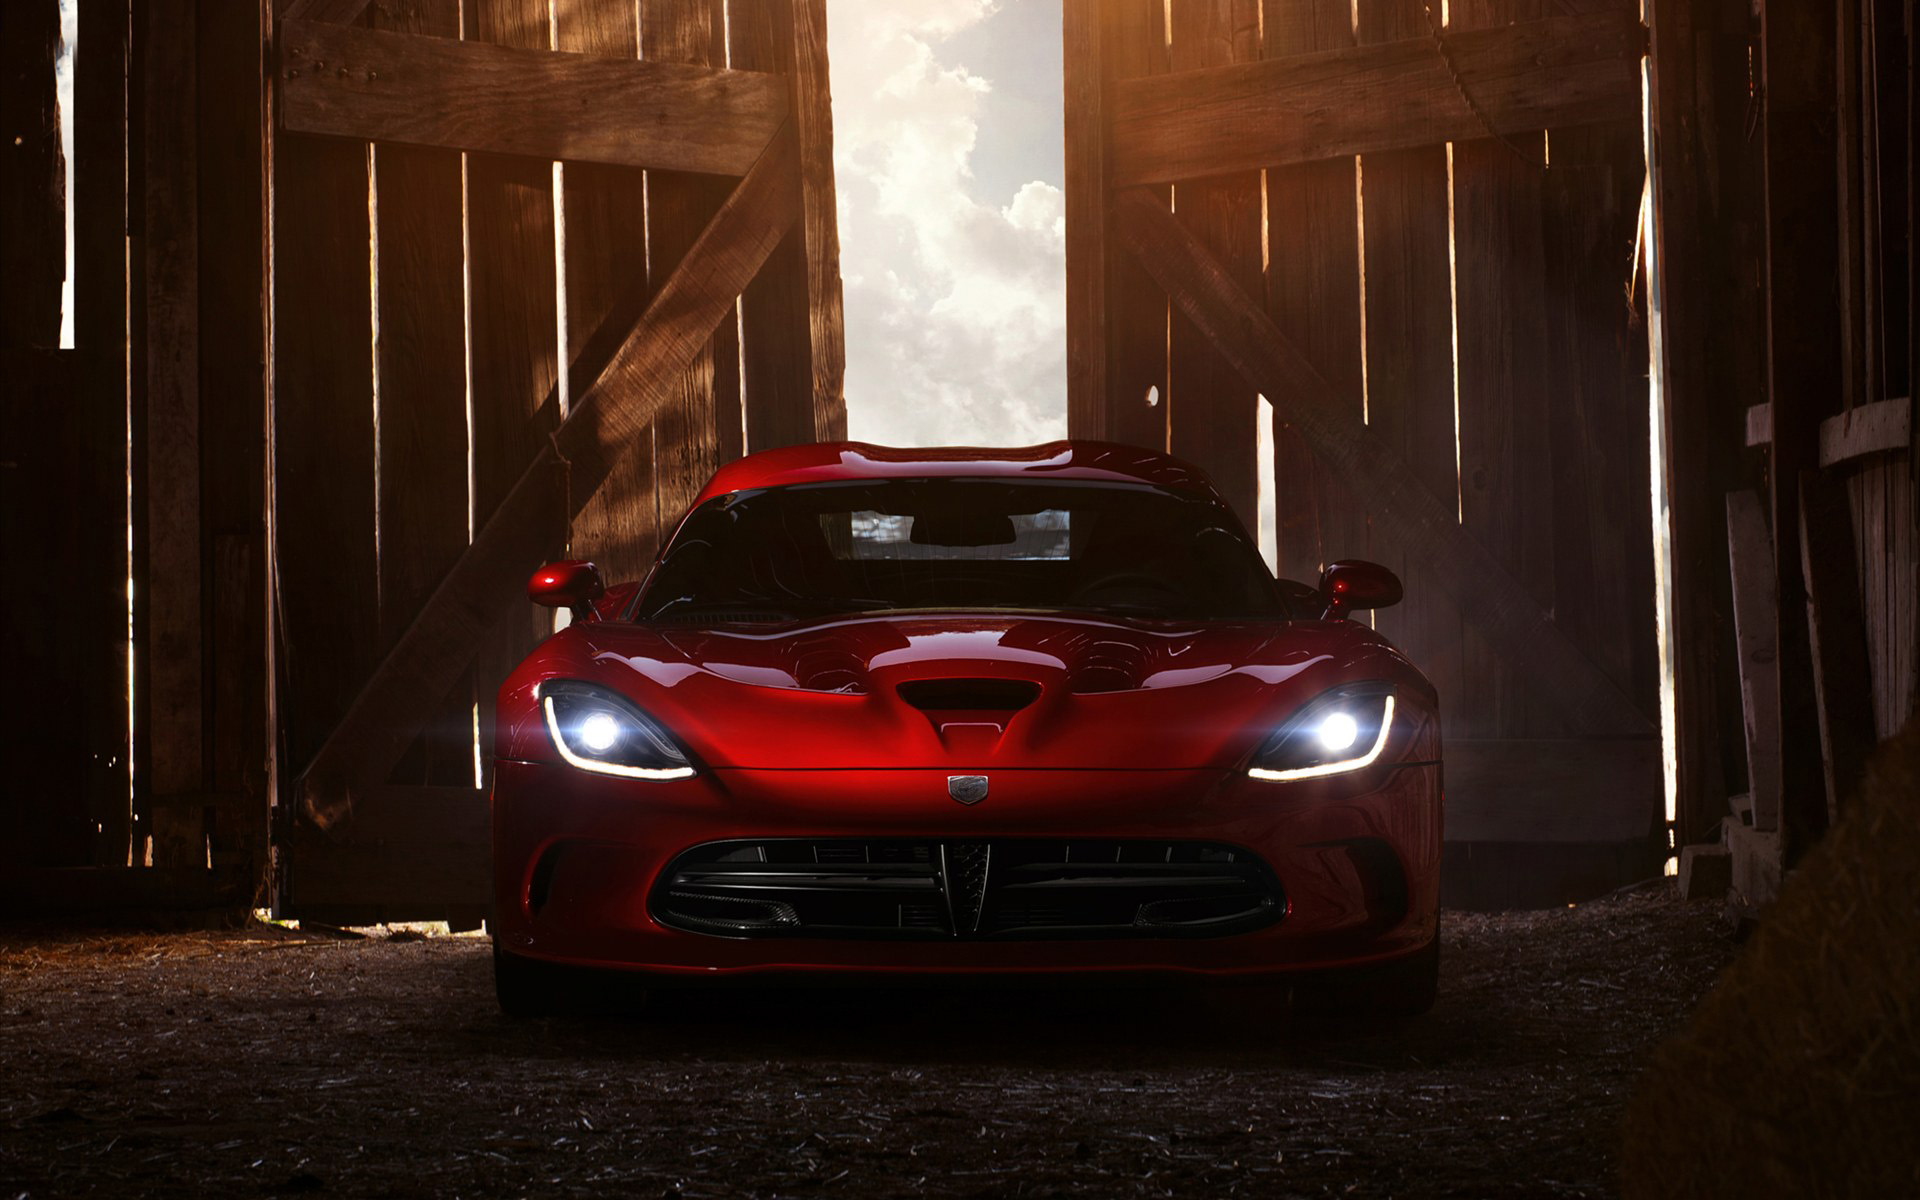 Cool SRT Viper Wallpaper